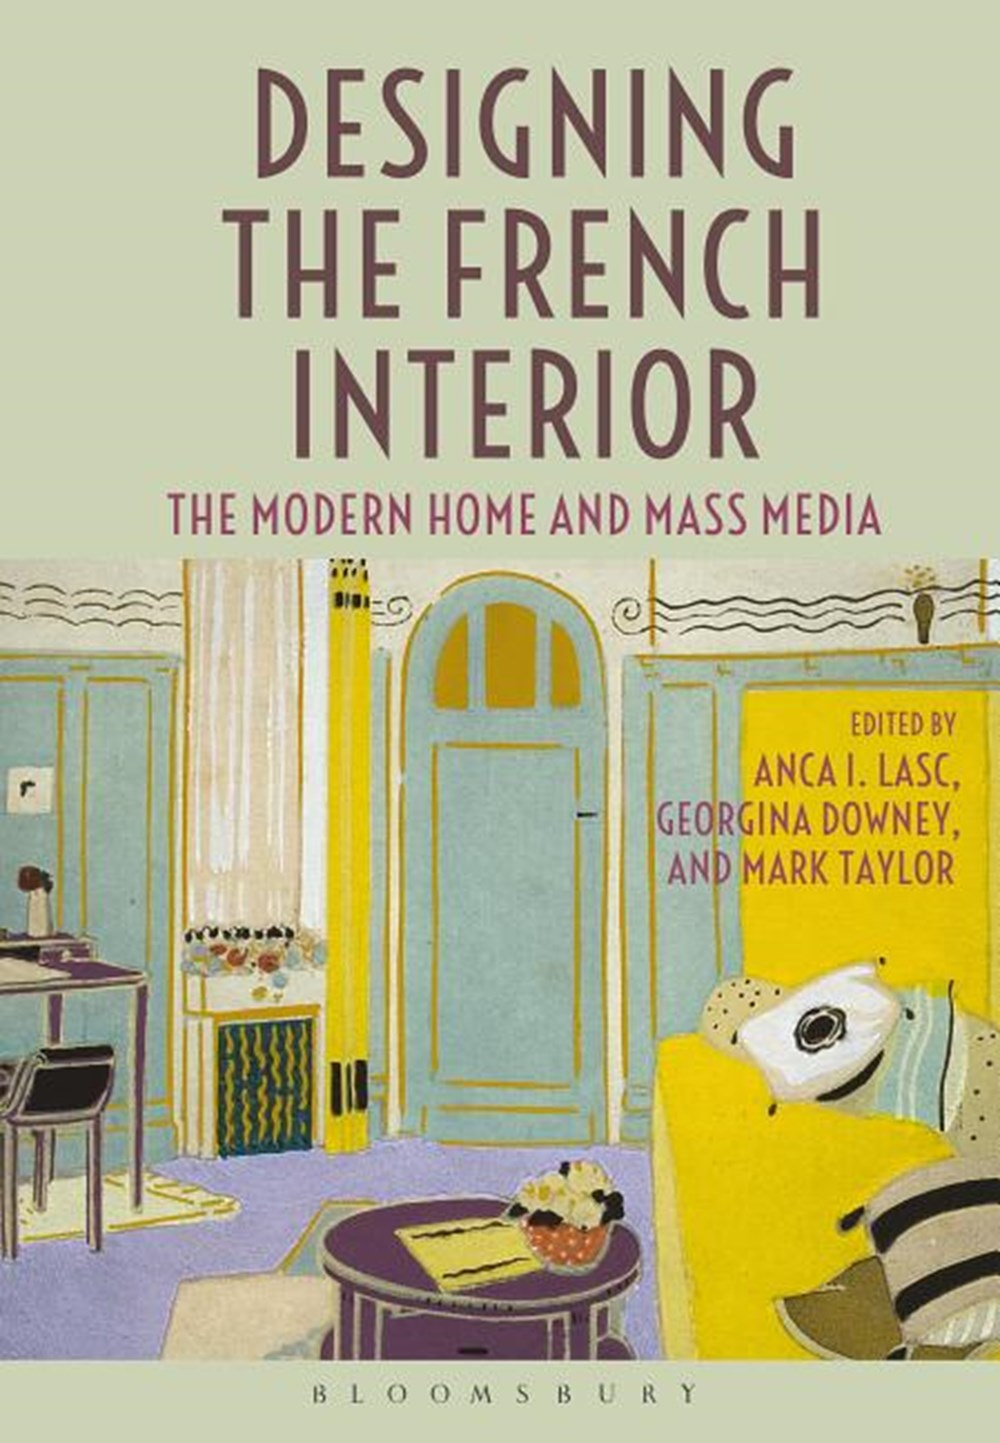 Designing the French Interior The Modern Home and Mass Media